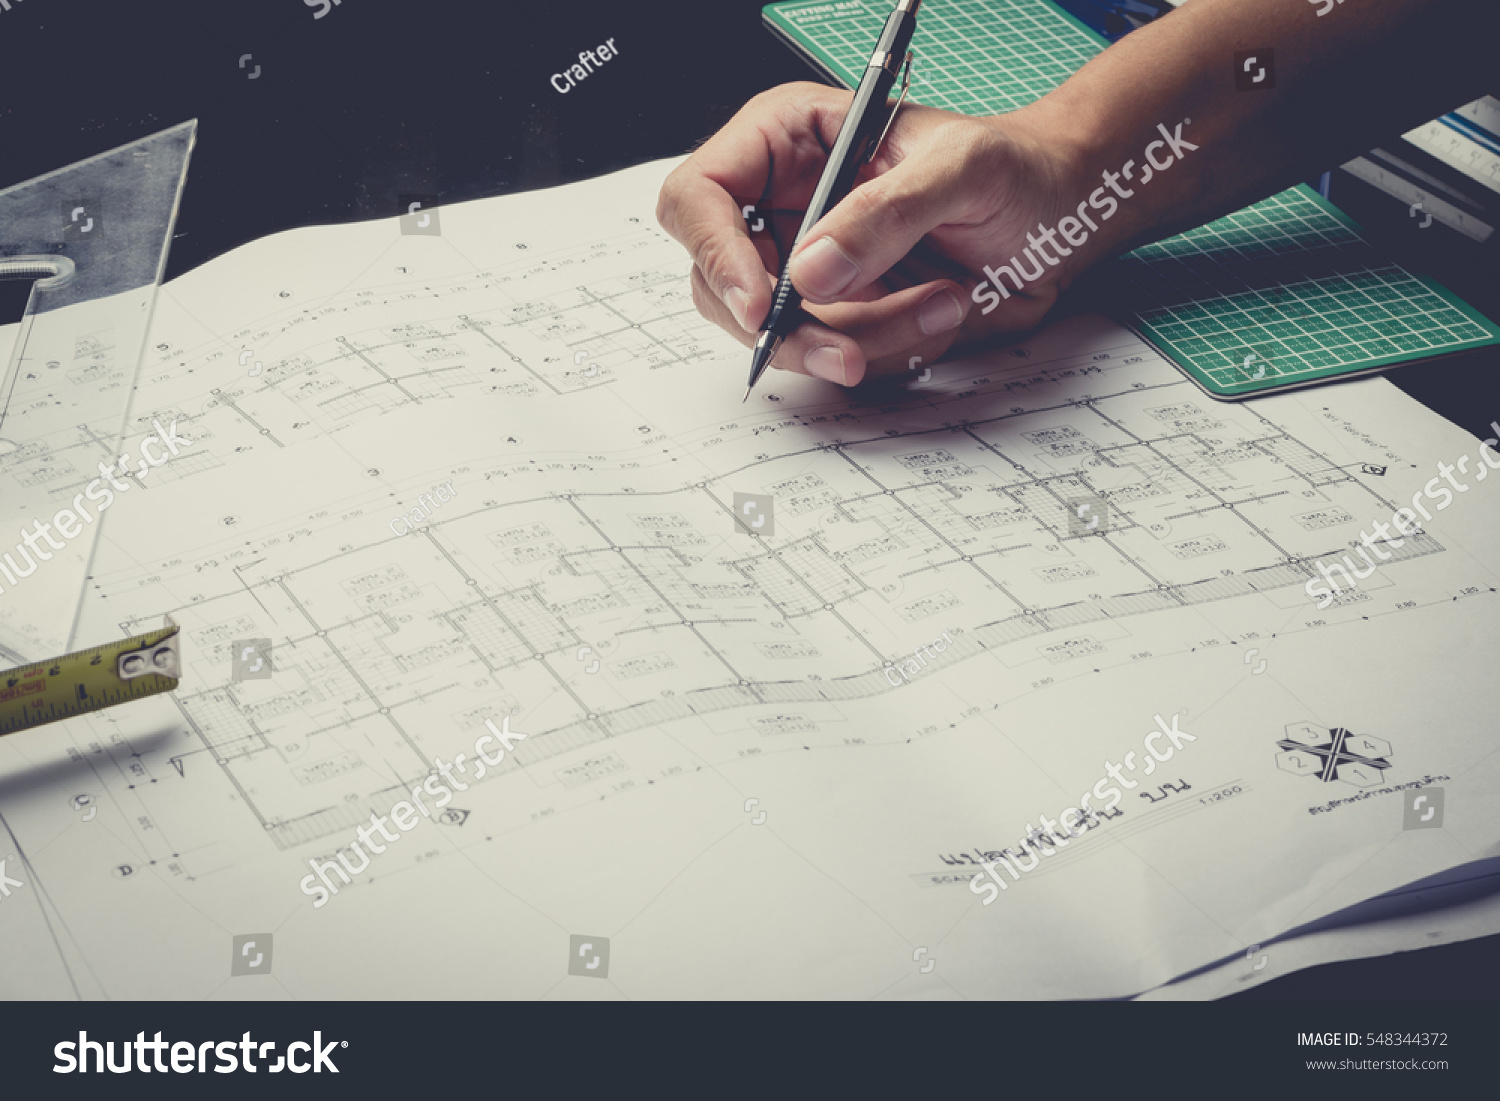 Engineering diagram blueprint paper drafting project stock photo engineering diagram blueprint paper drafting project sketch architecturalselective focusvintage filter malvernweather Image collections